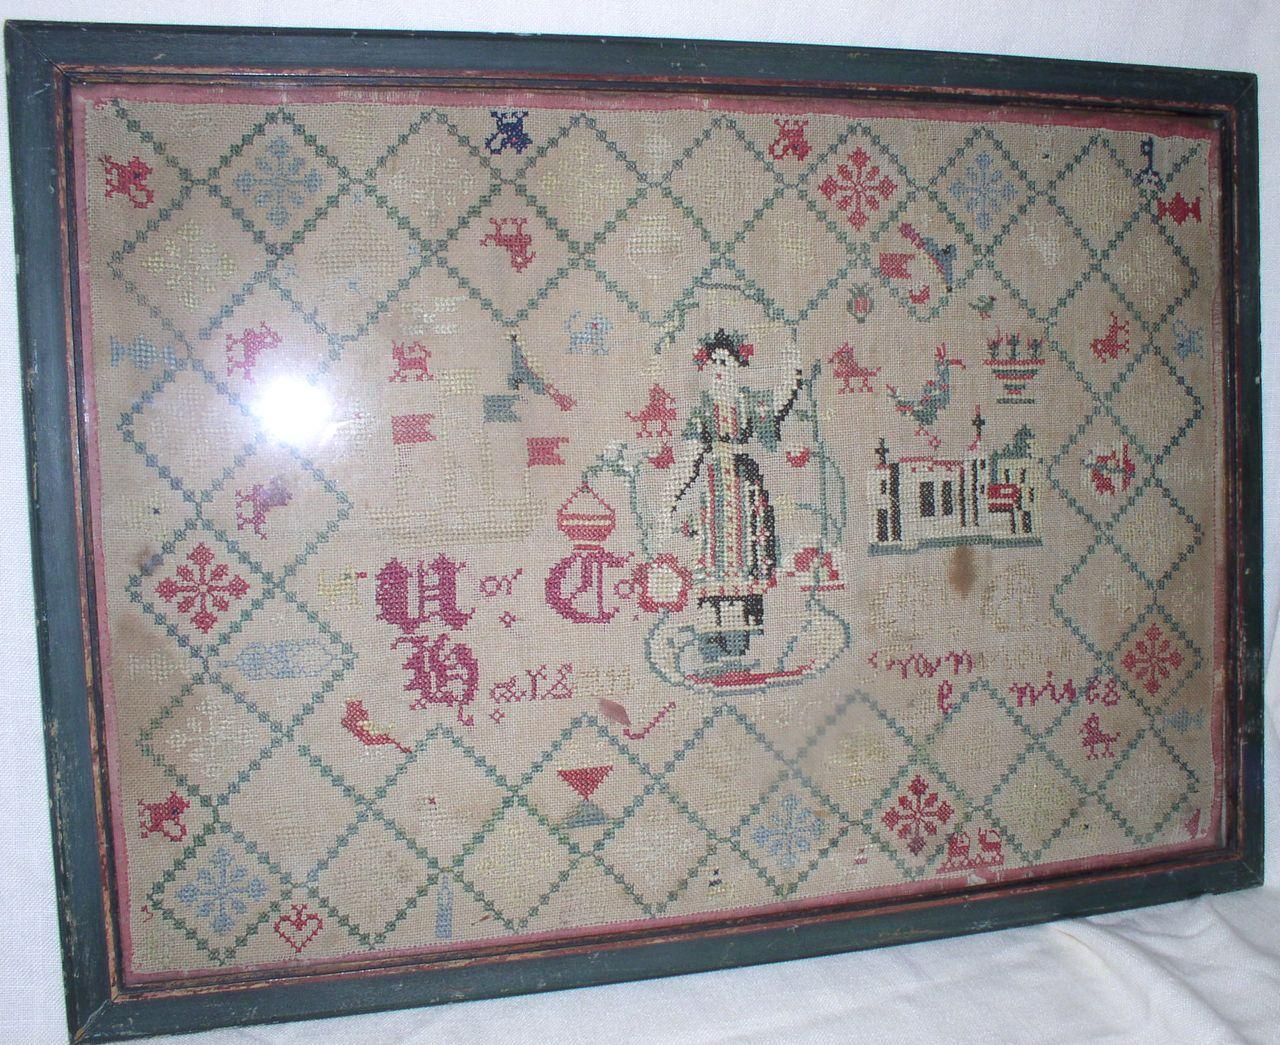 D. 1860 Early American School Girls Sampler/Embroidery